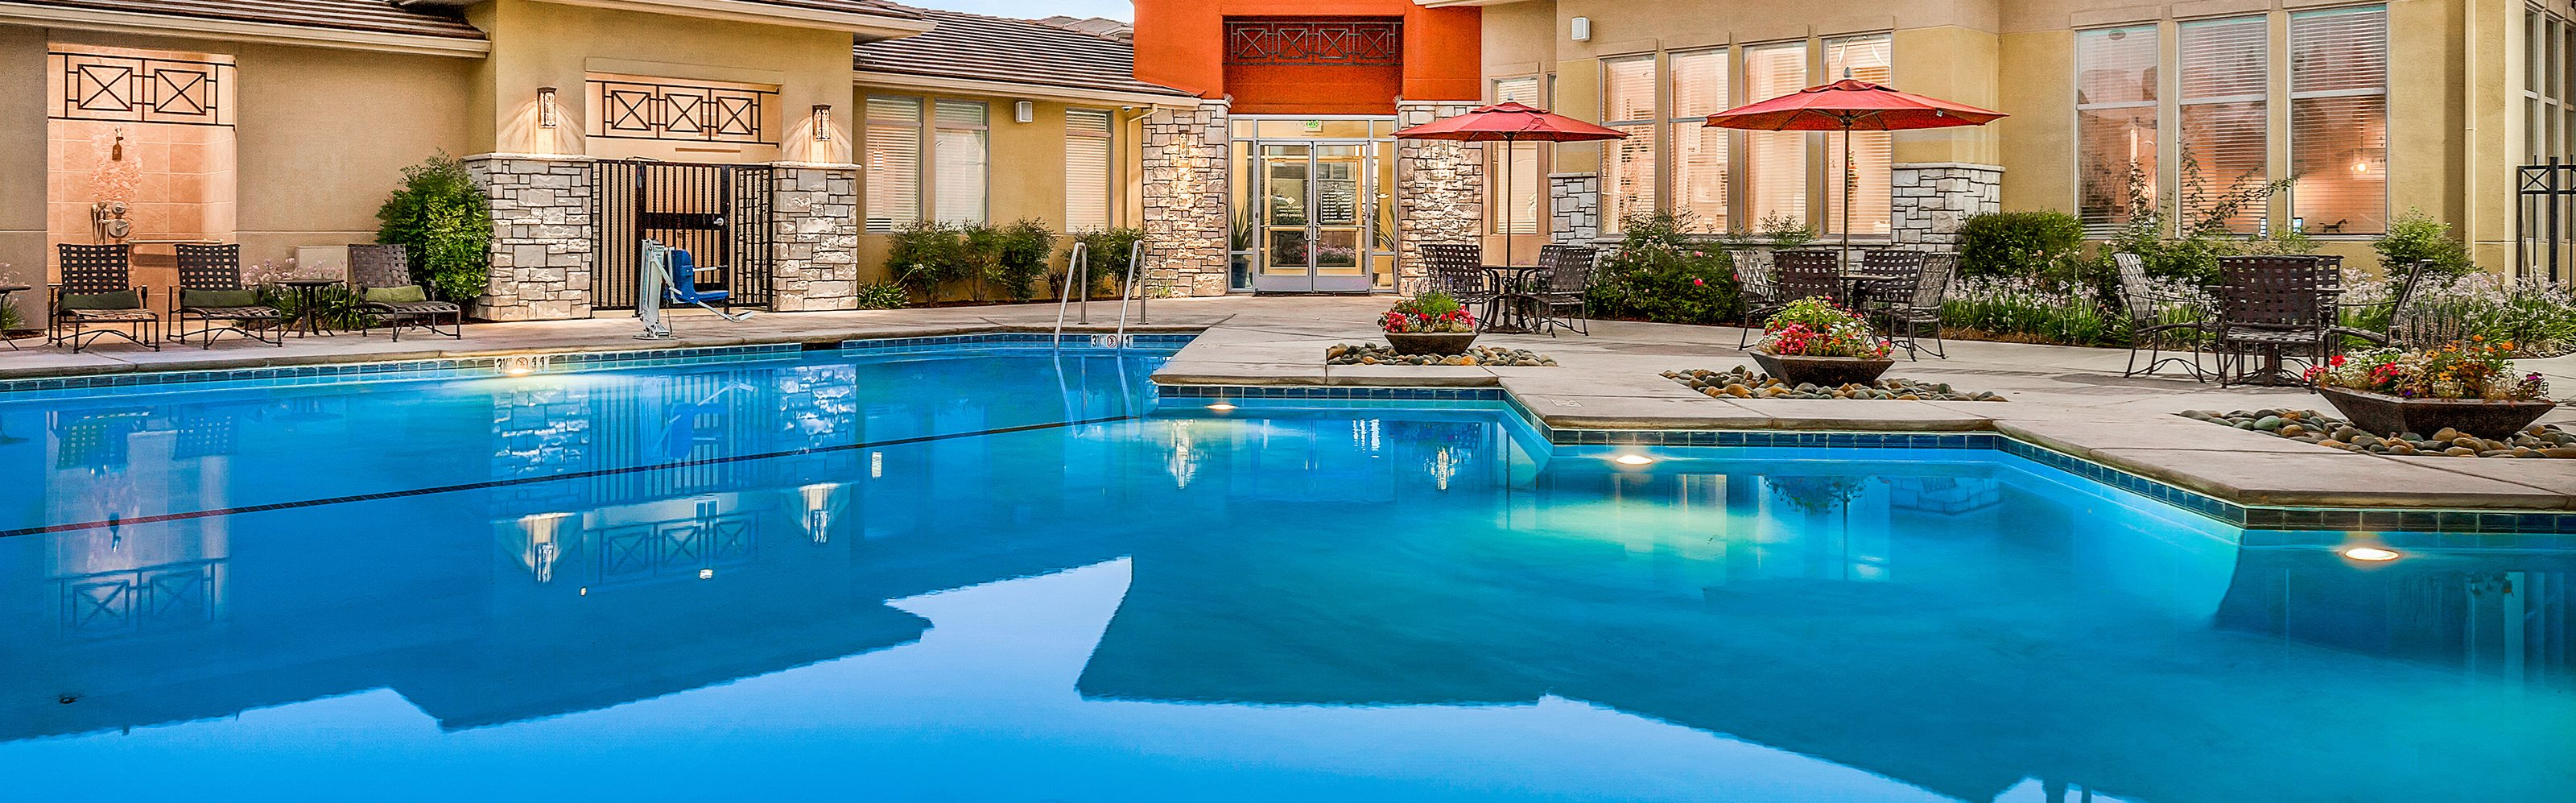 Quinn Crossing Apartments | Apartments in Vacaville, CA |